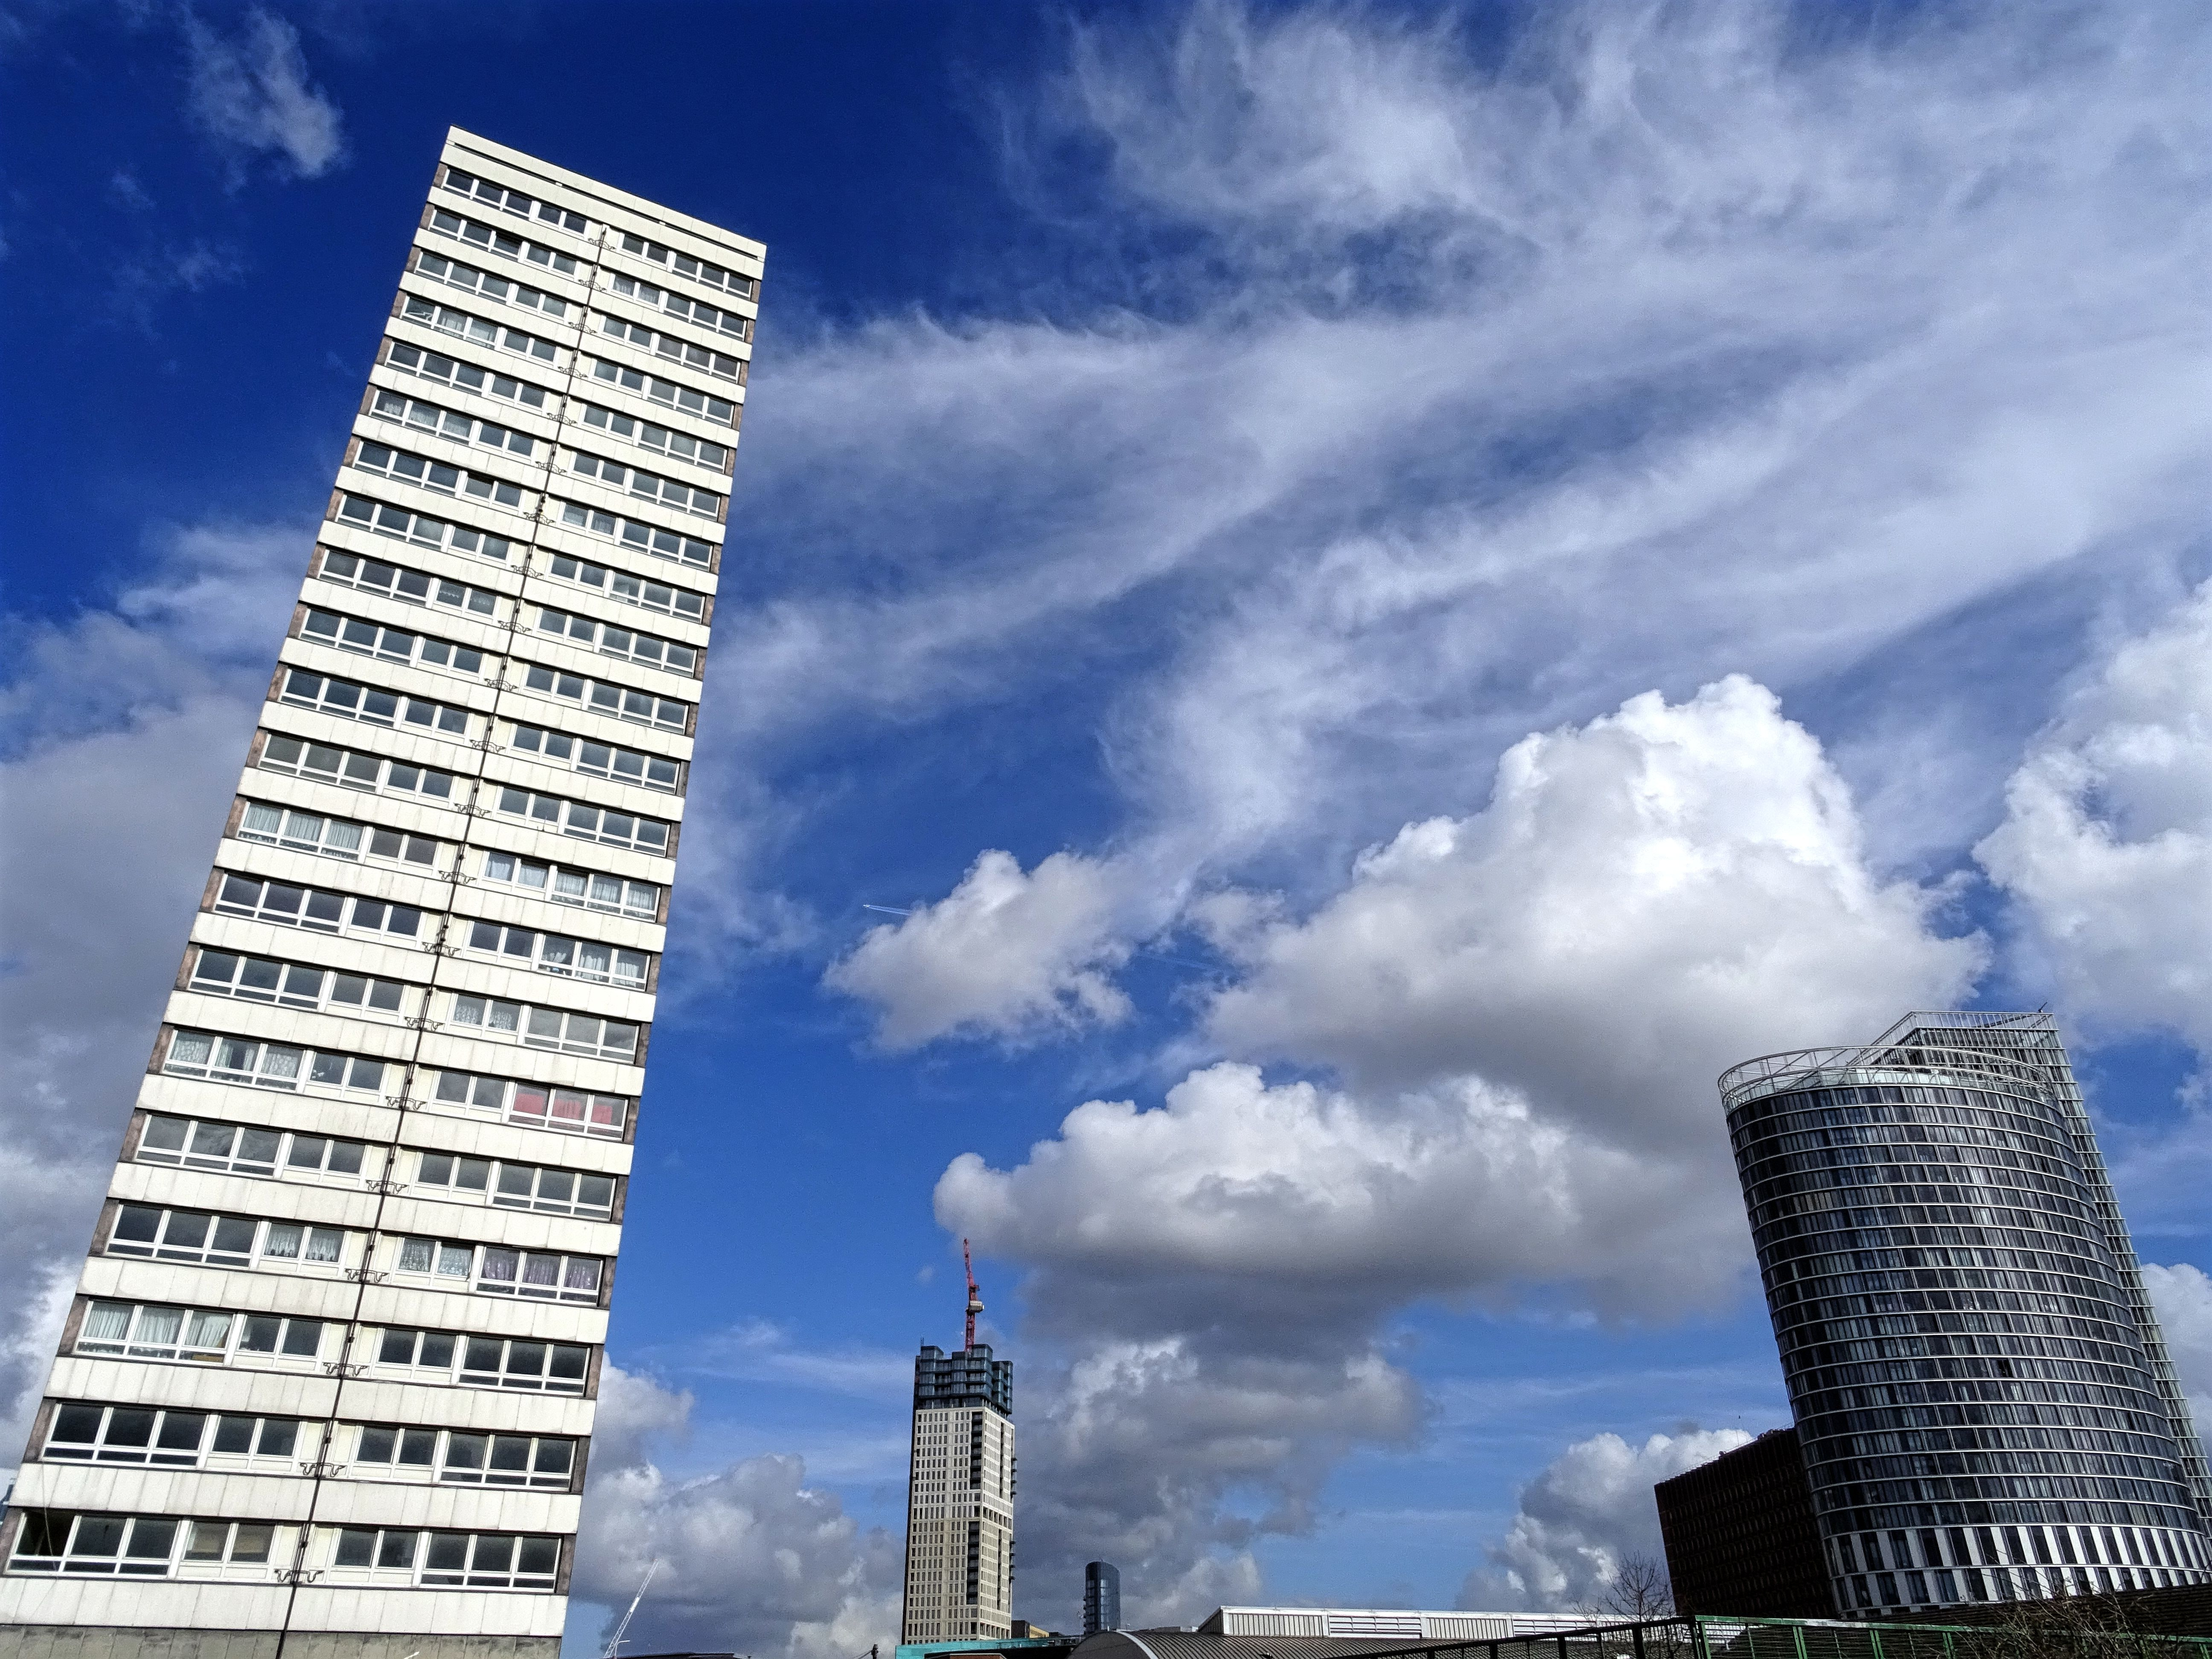 Photo of Two White and Black High Rise Buildings, Architectural design, Outdoors, Tower, Tallest, HQ Photo